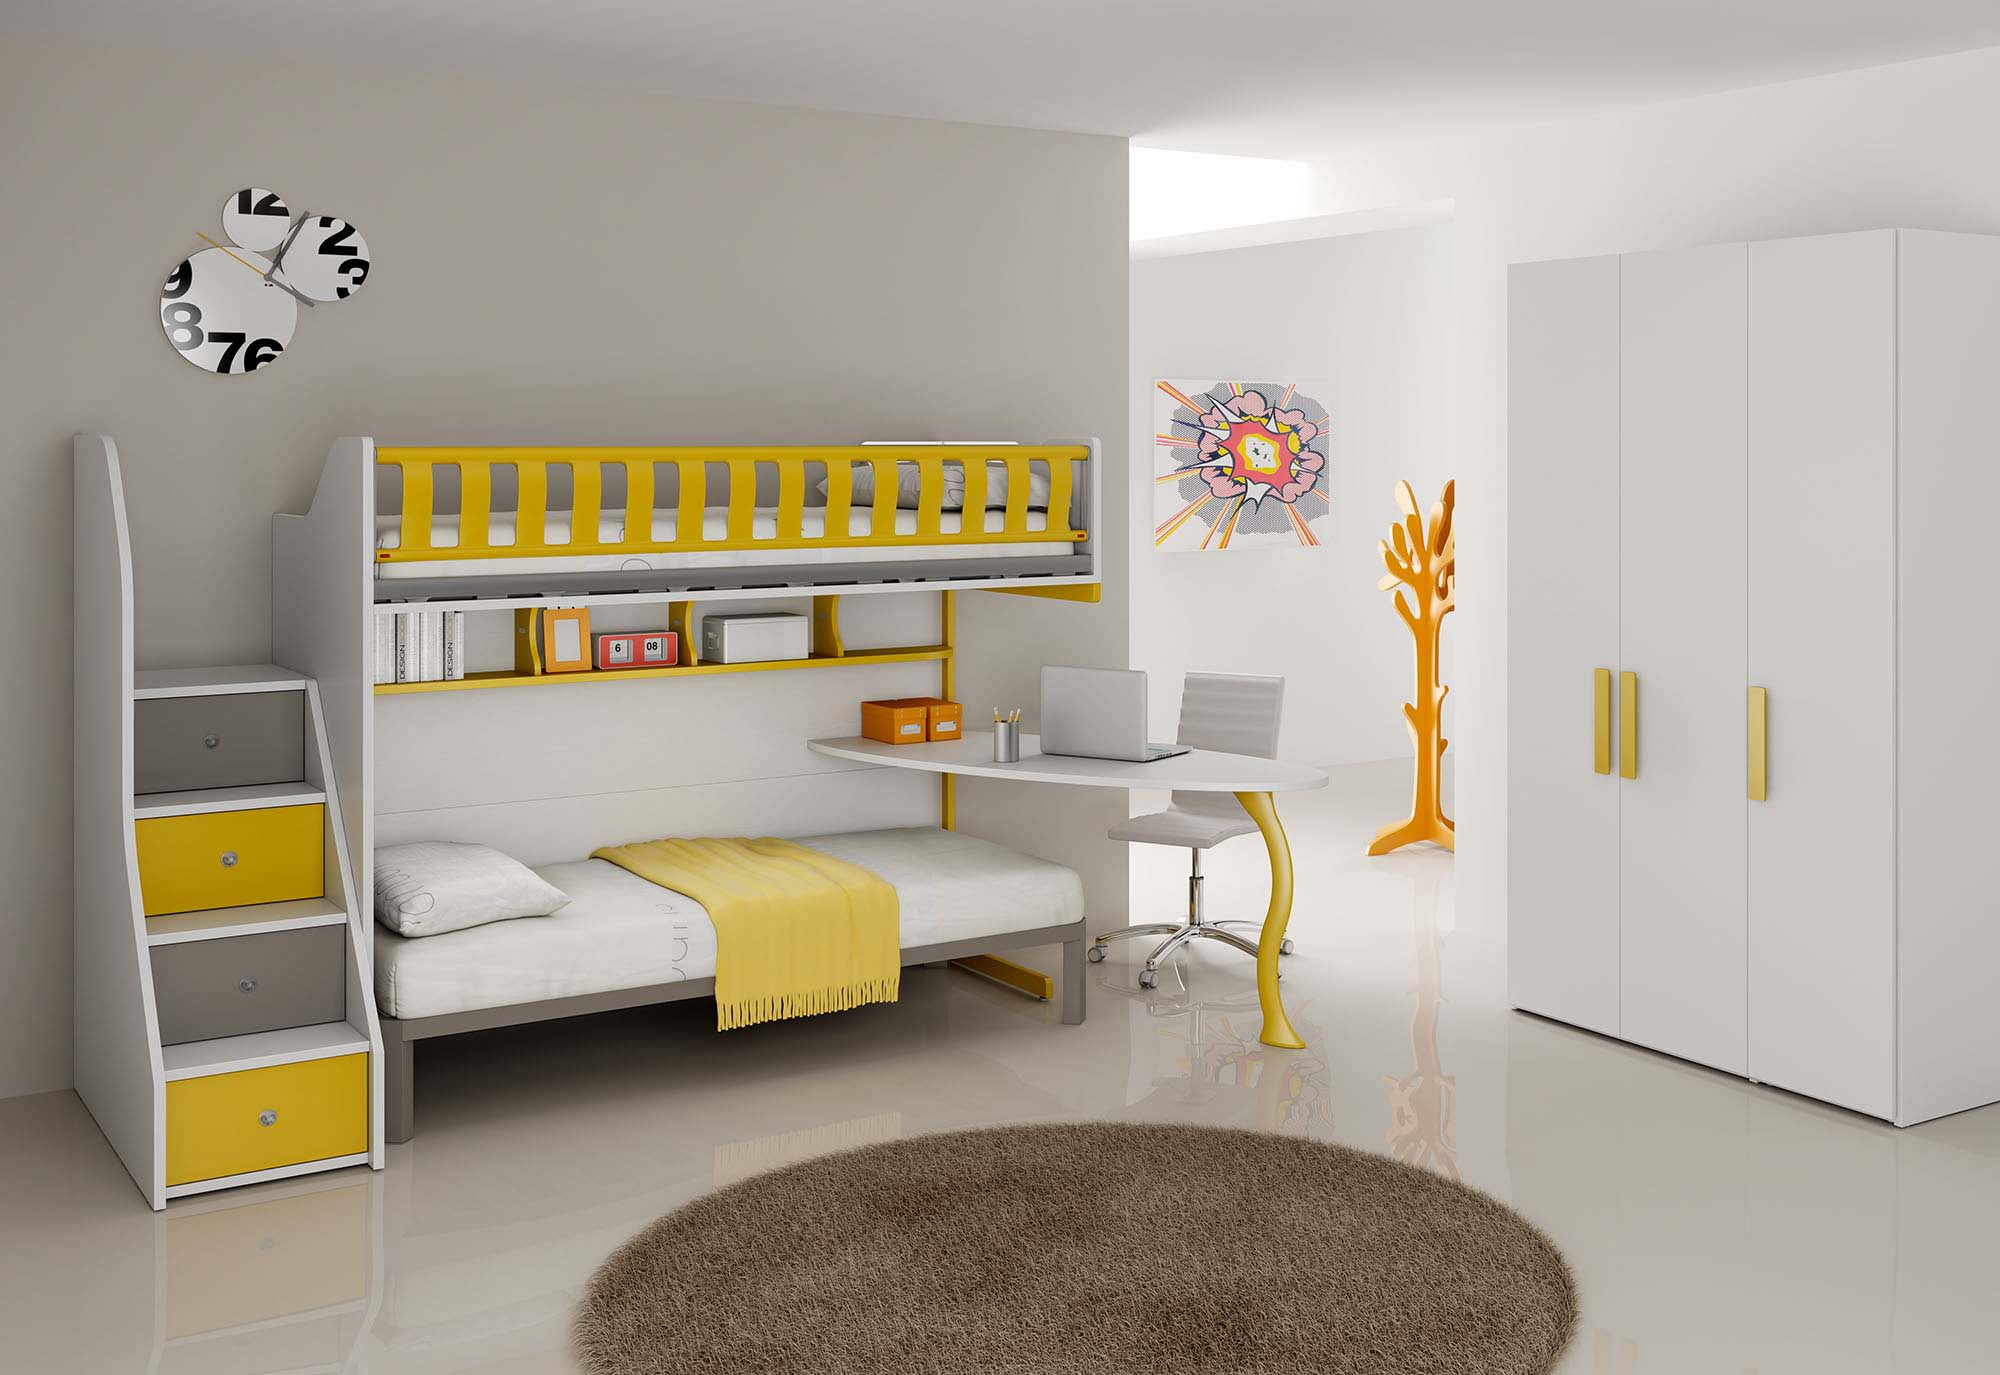 Chambre fille avec lit superpose - Lit supperpose enfant ...